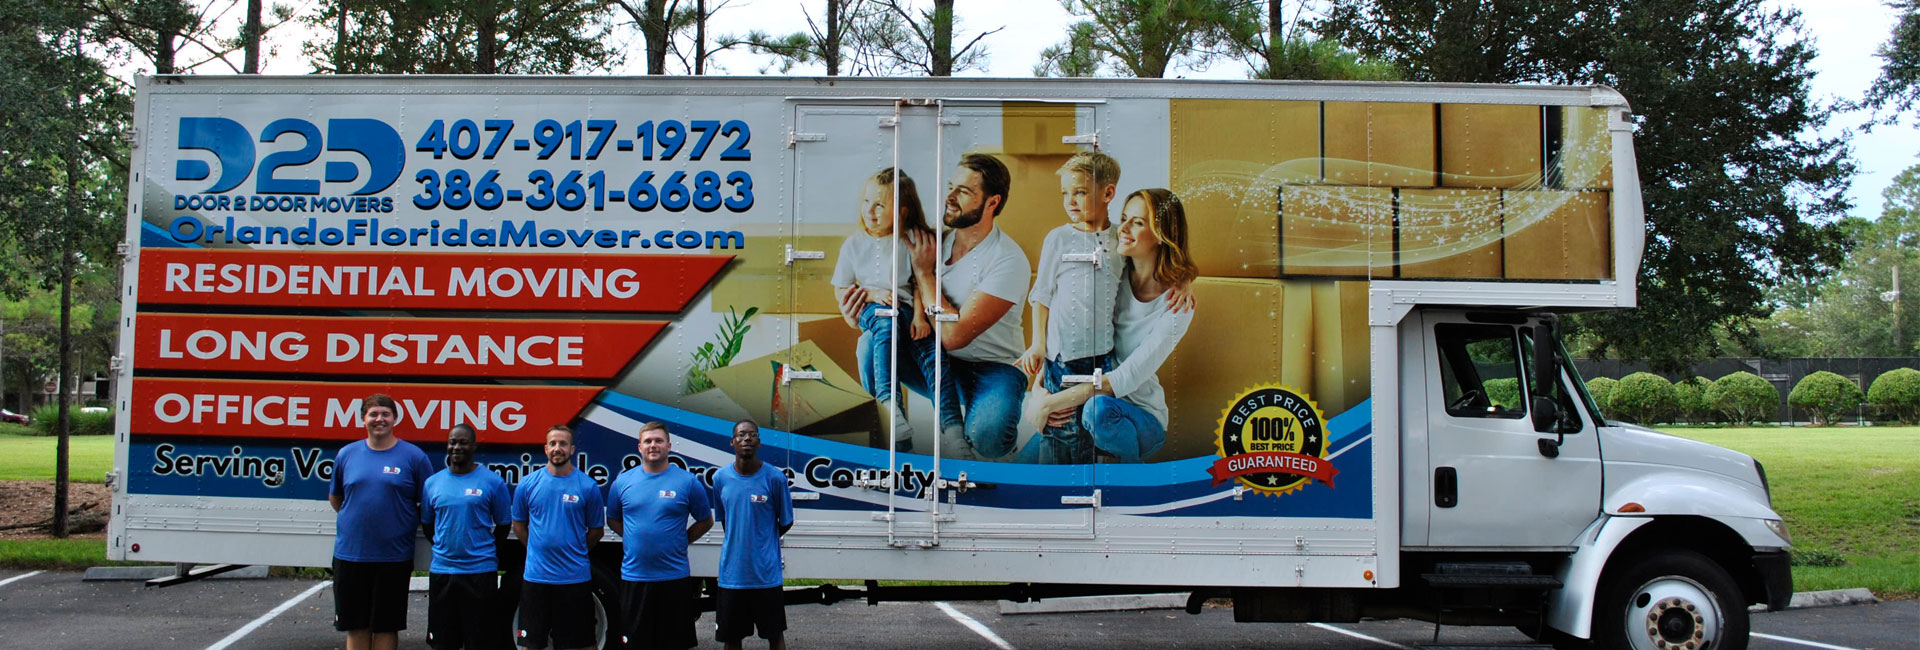 Providing Luxury Moving Services to all of Orlando